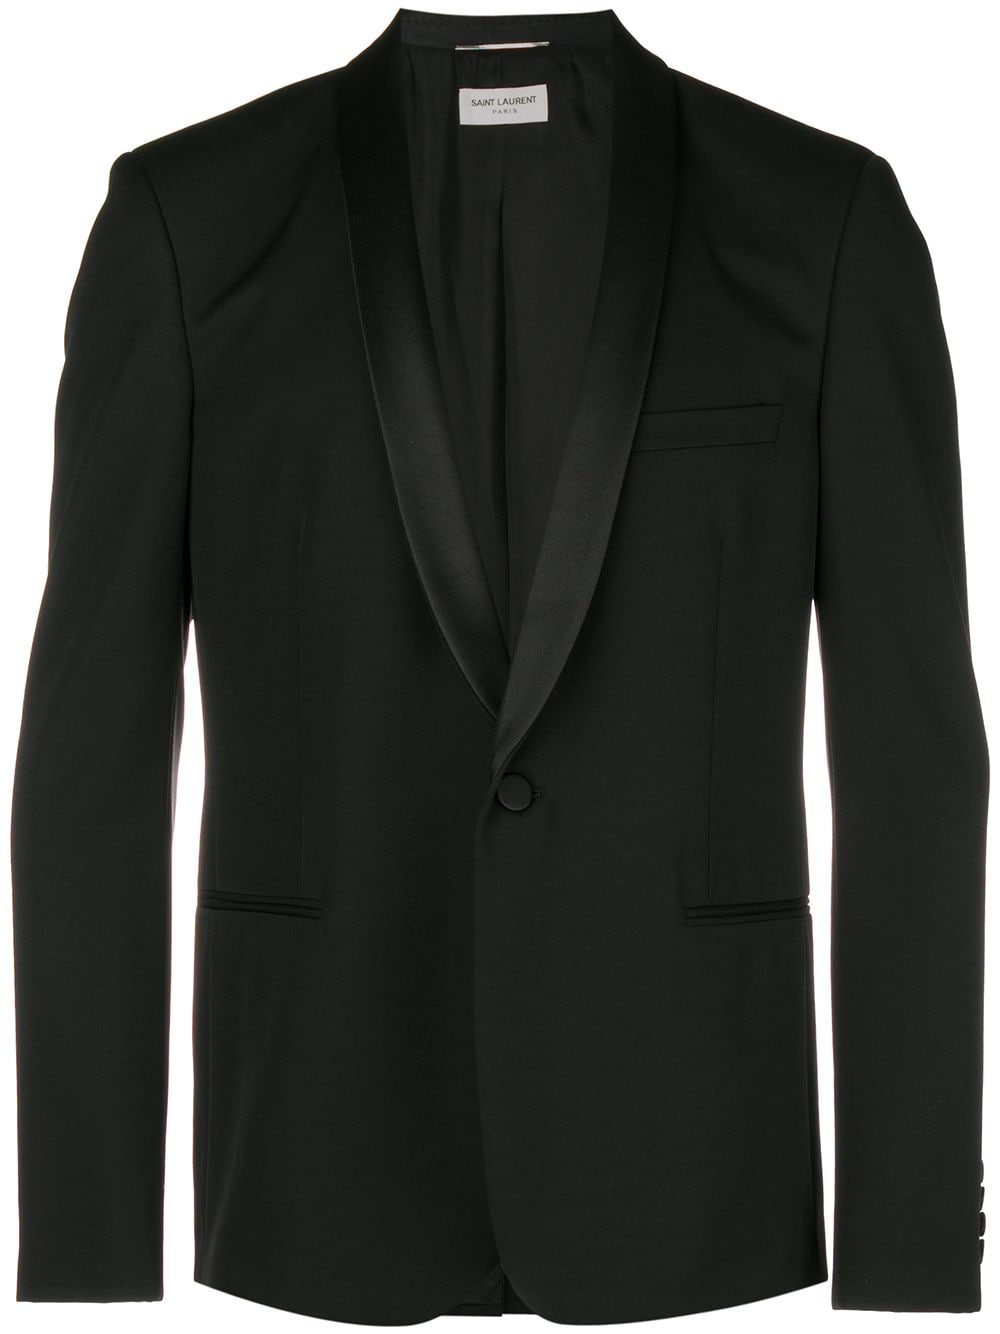 Saint Laurent dinner jacket - Black von Saint Laurent